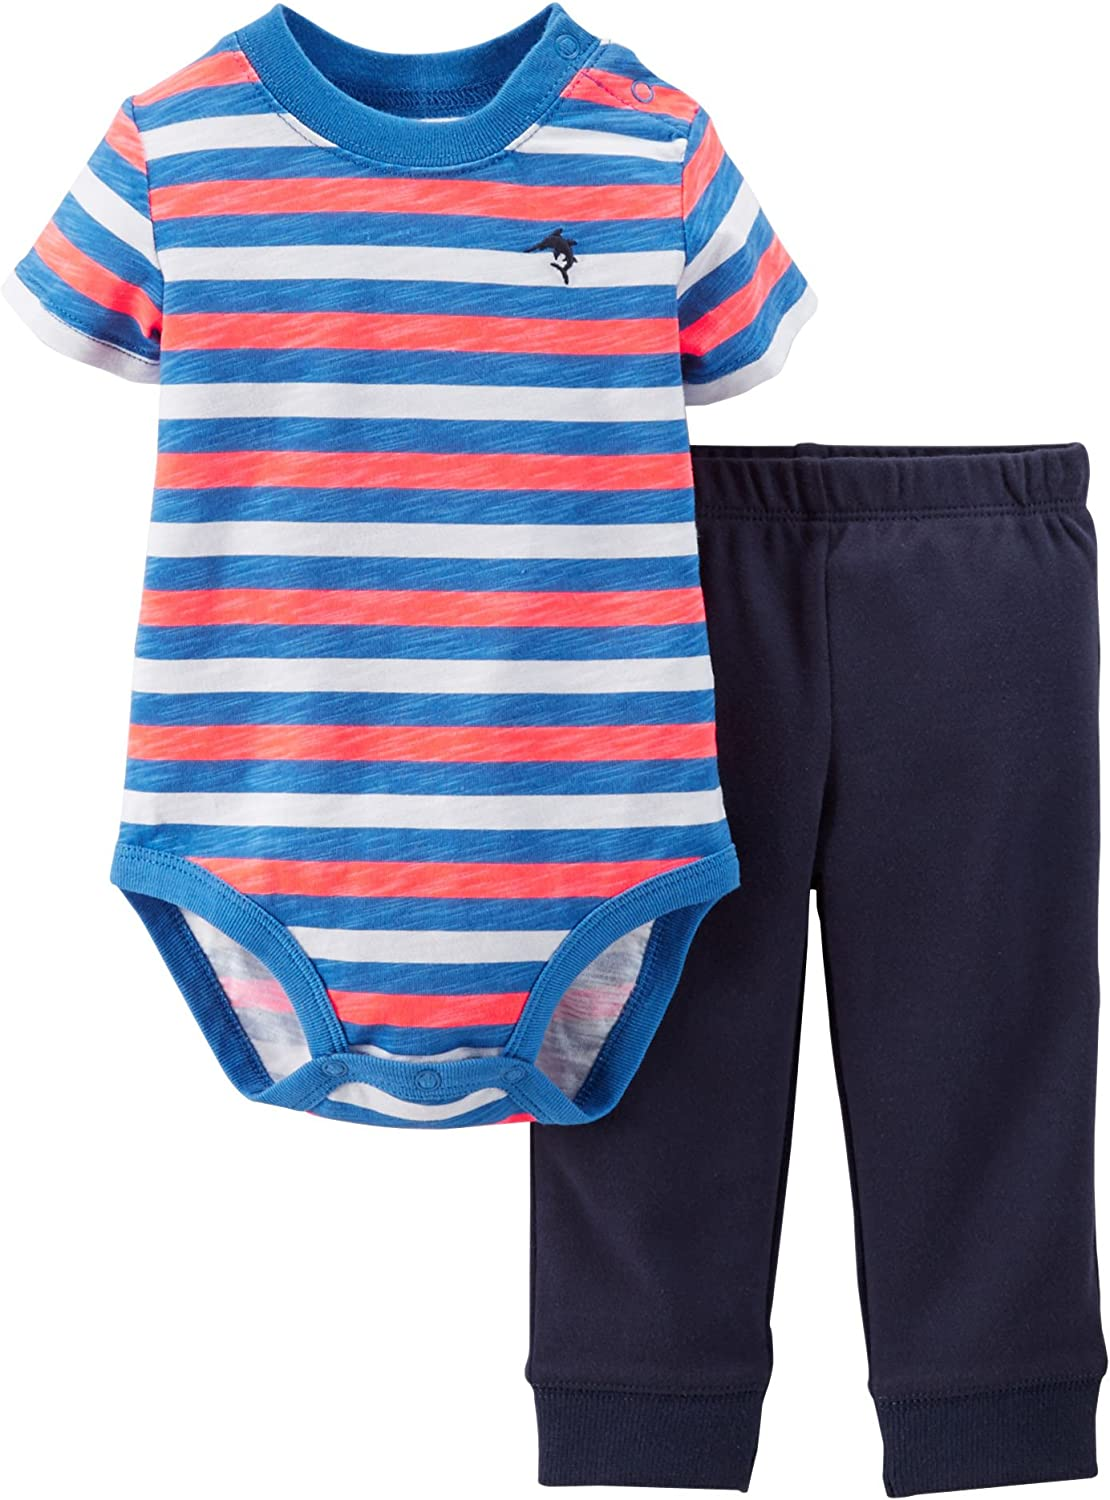 Baby newborn outfit set for boy/'s 3 piece set size 6-9lb navy blue by carter/'s